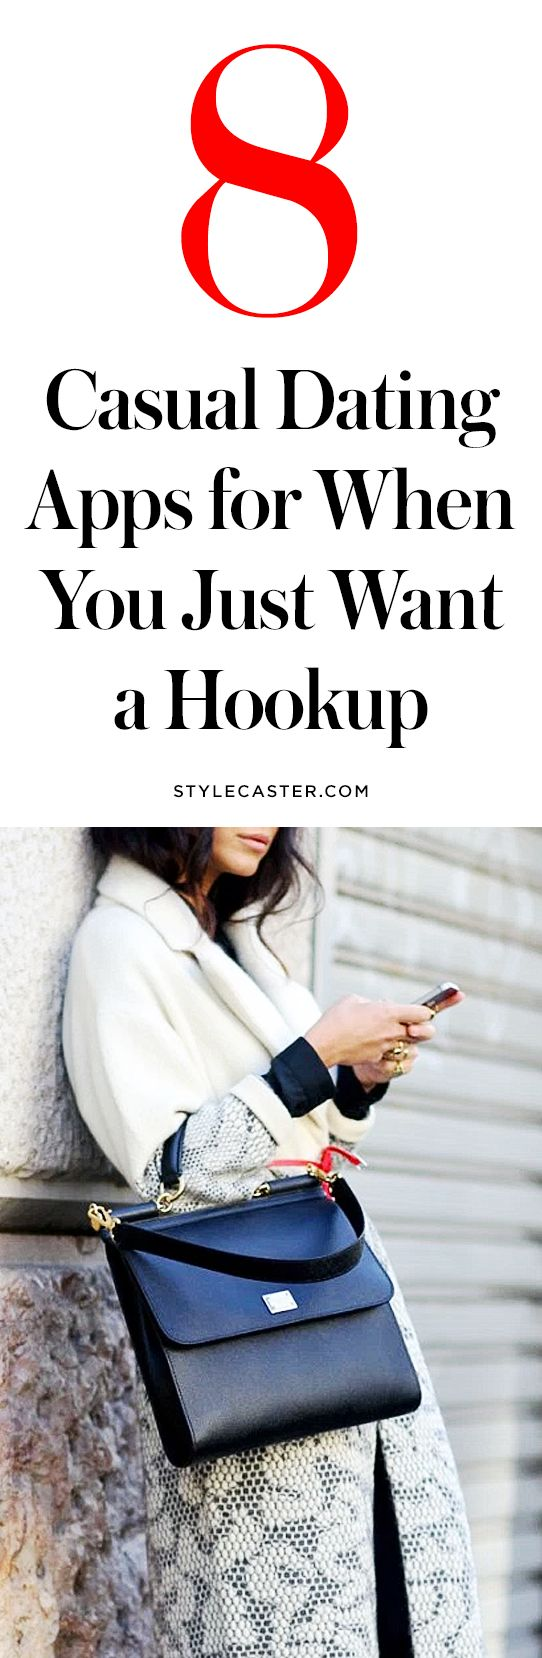 The best casual dating apps | @stylecaster | StyleCaster